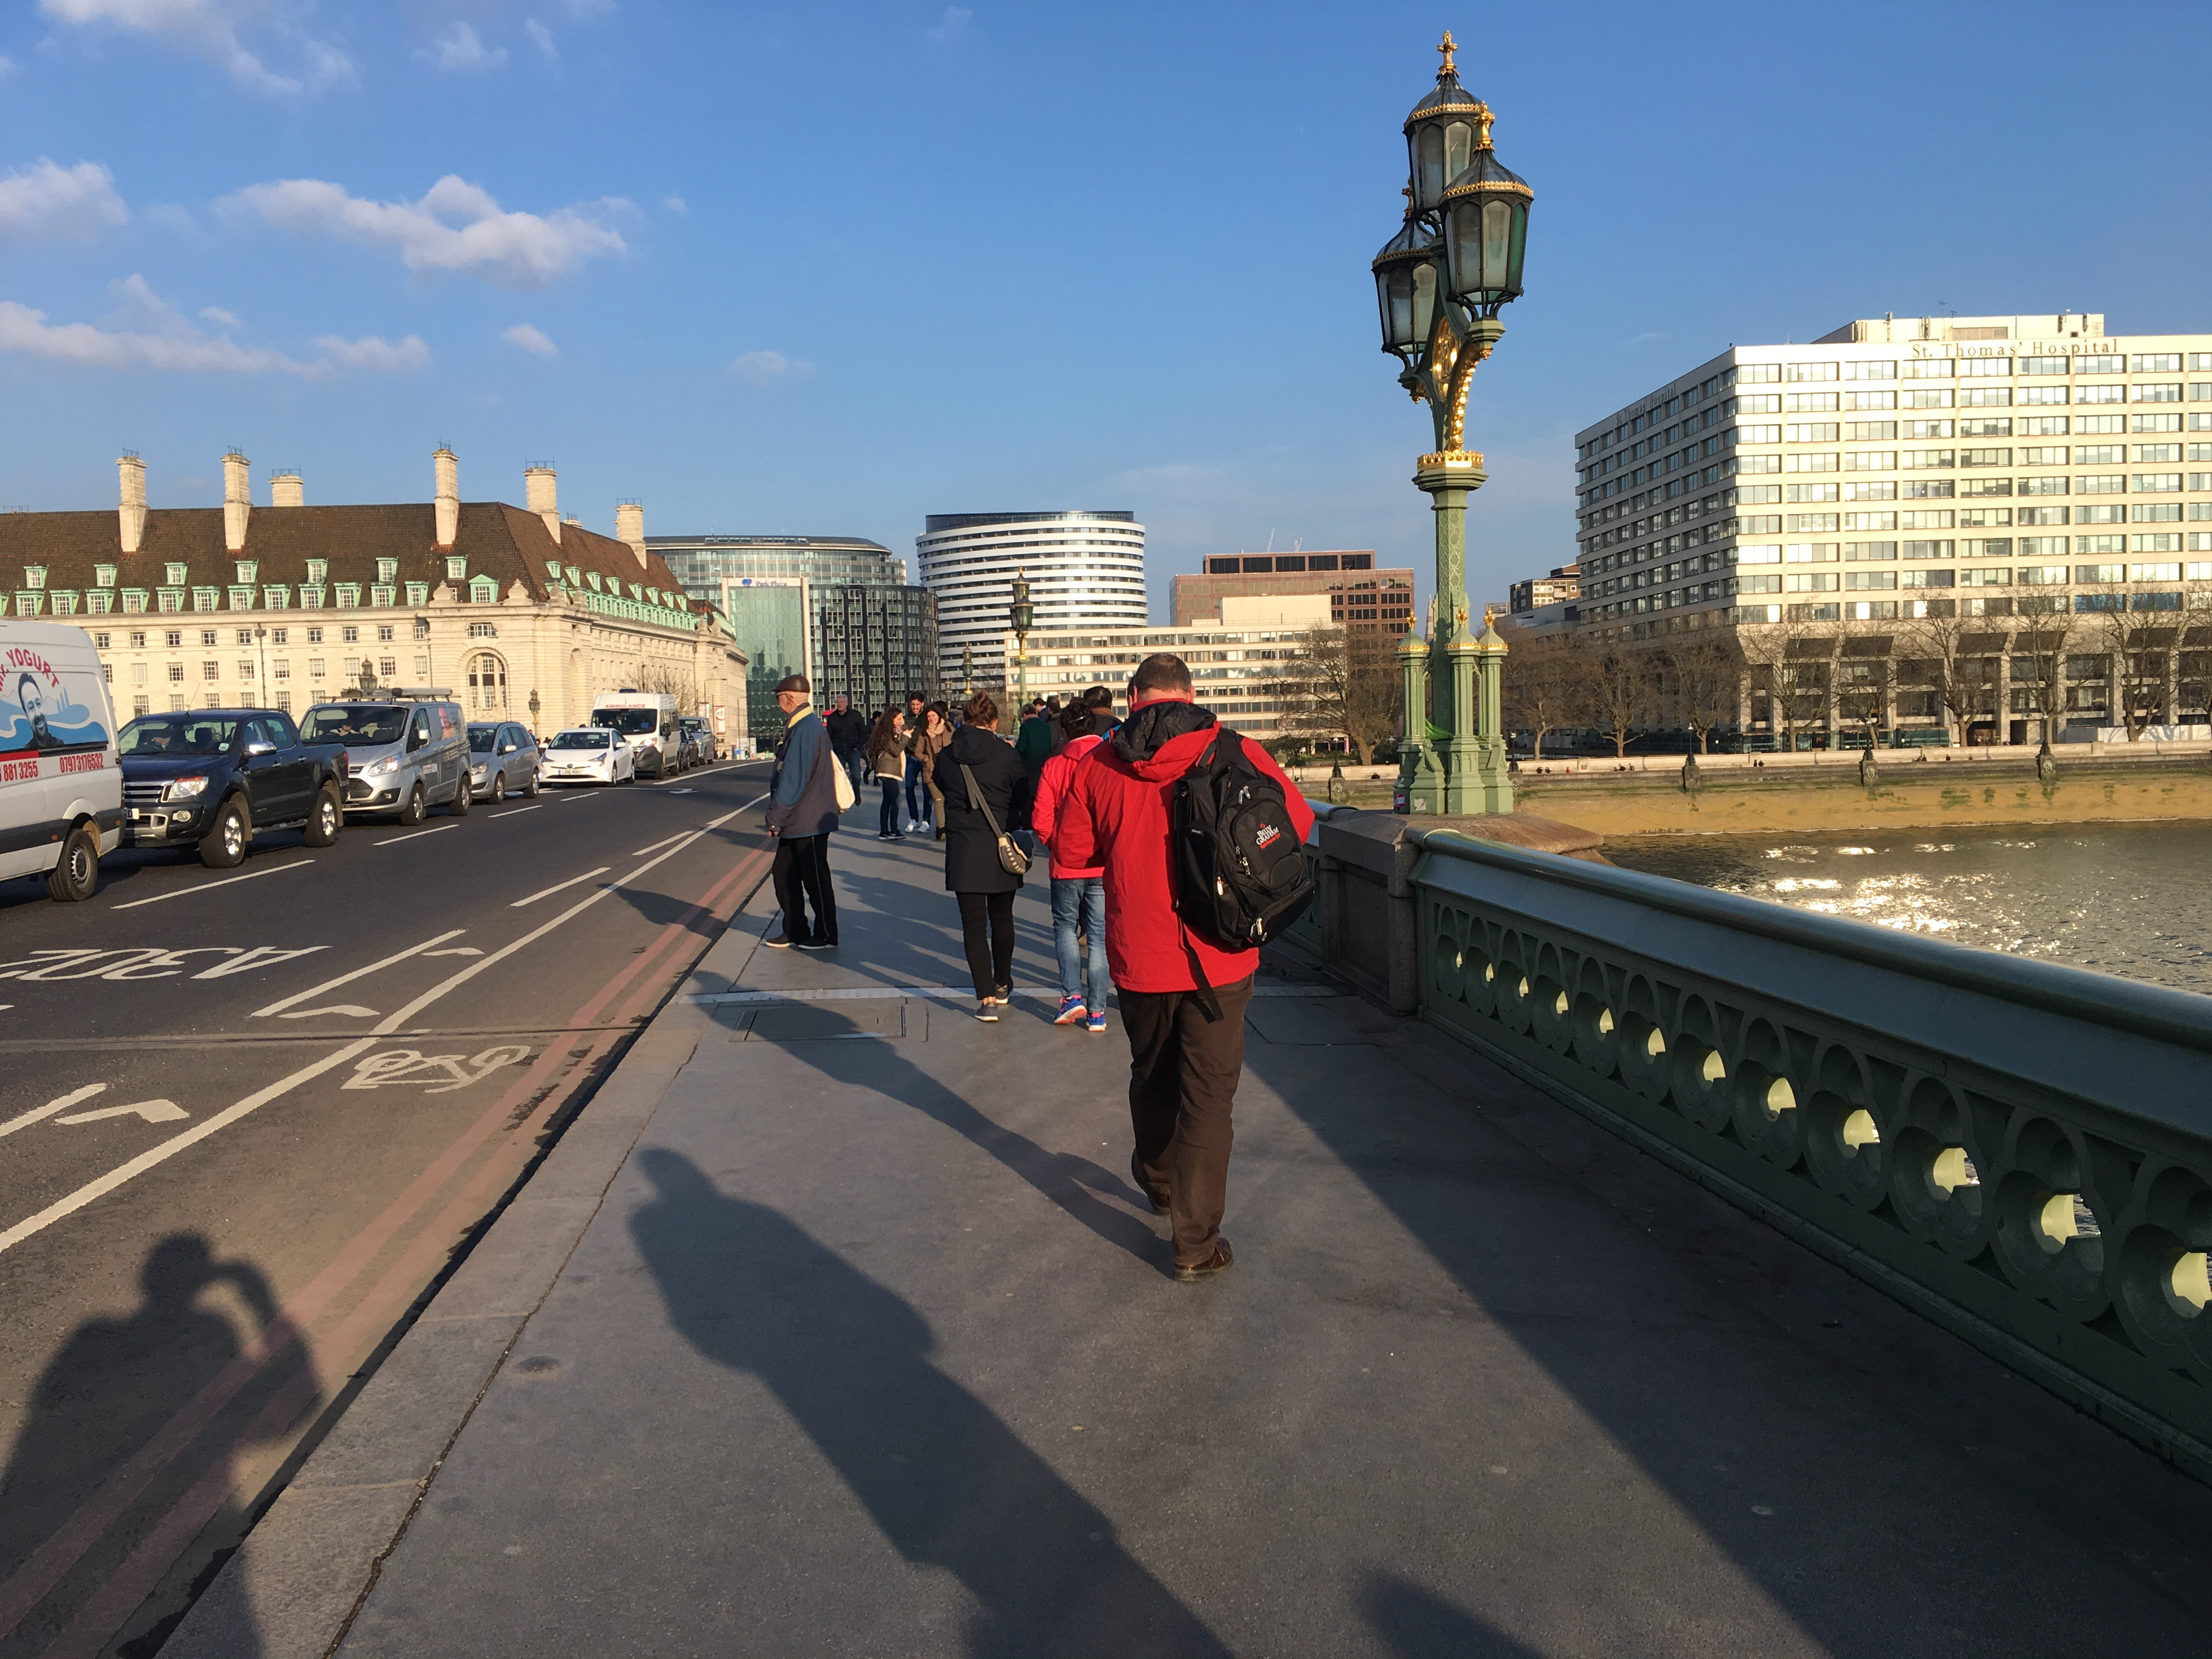 A Billy Graham Chaplain crosses Westminster Bridge, where more than 40 people were killed or injured the day before